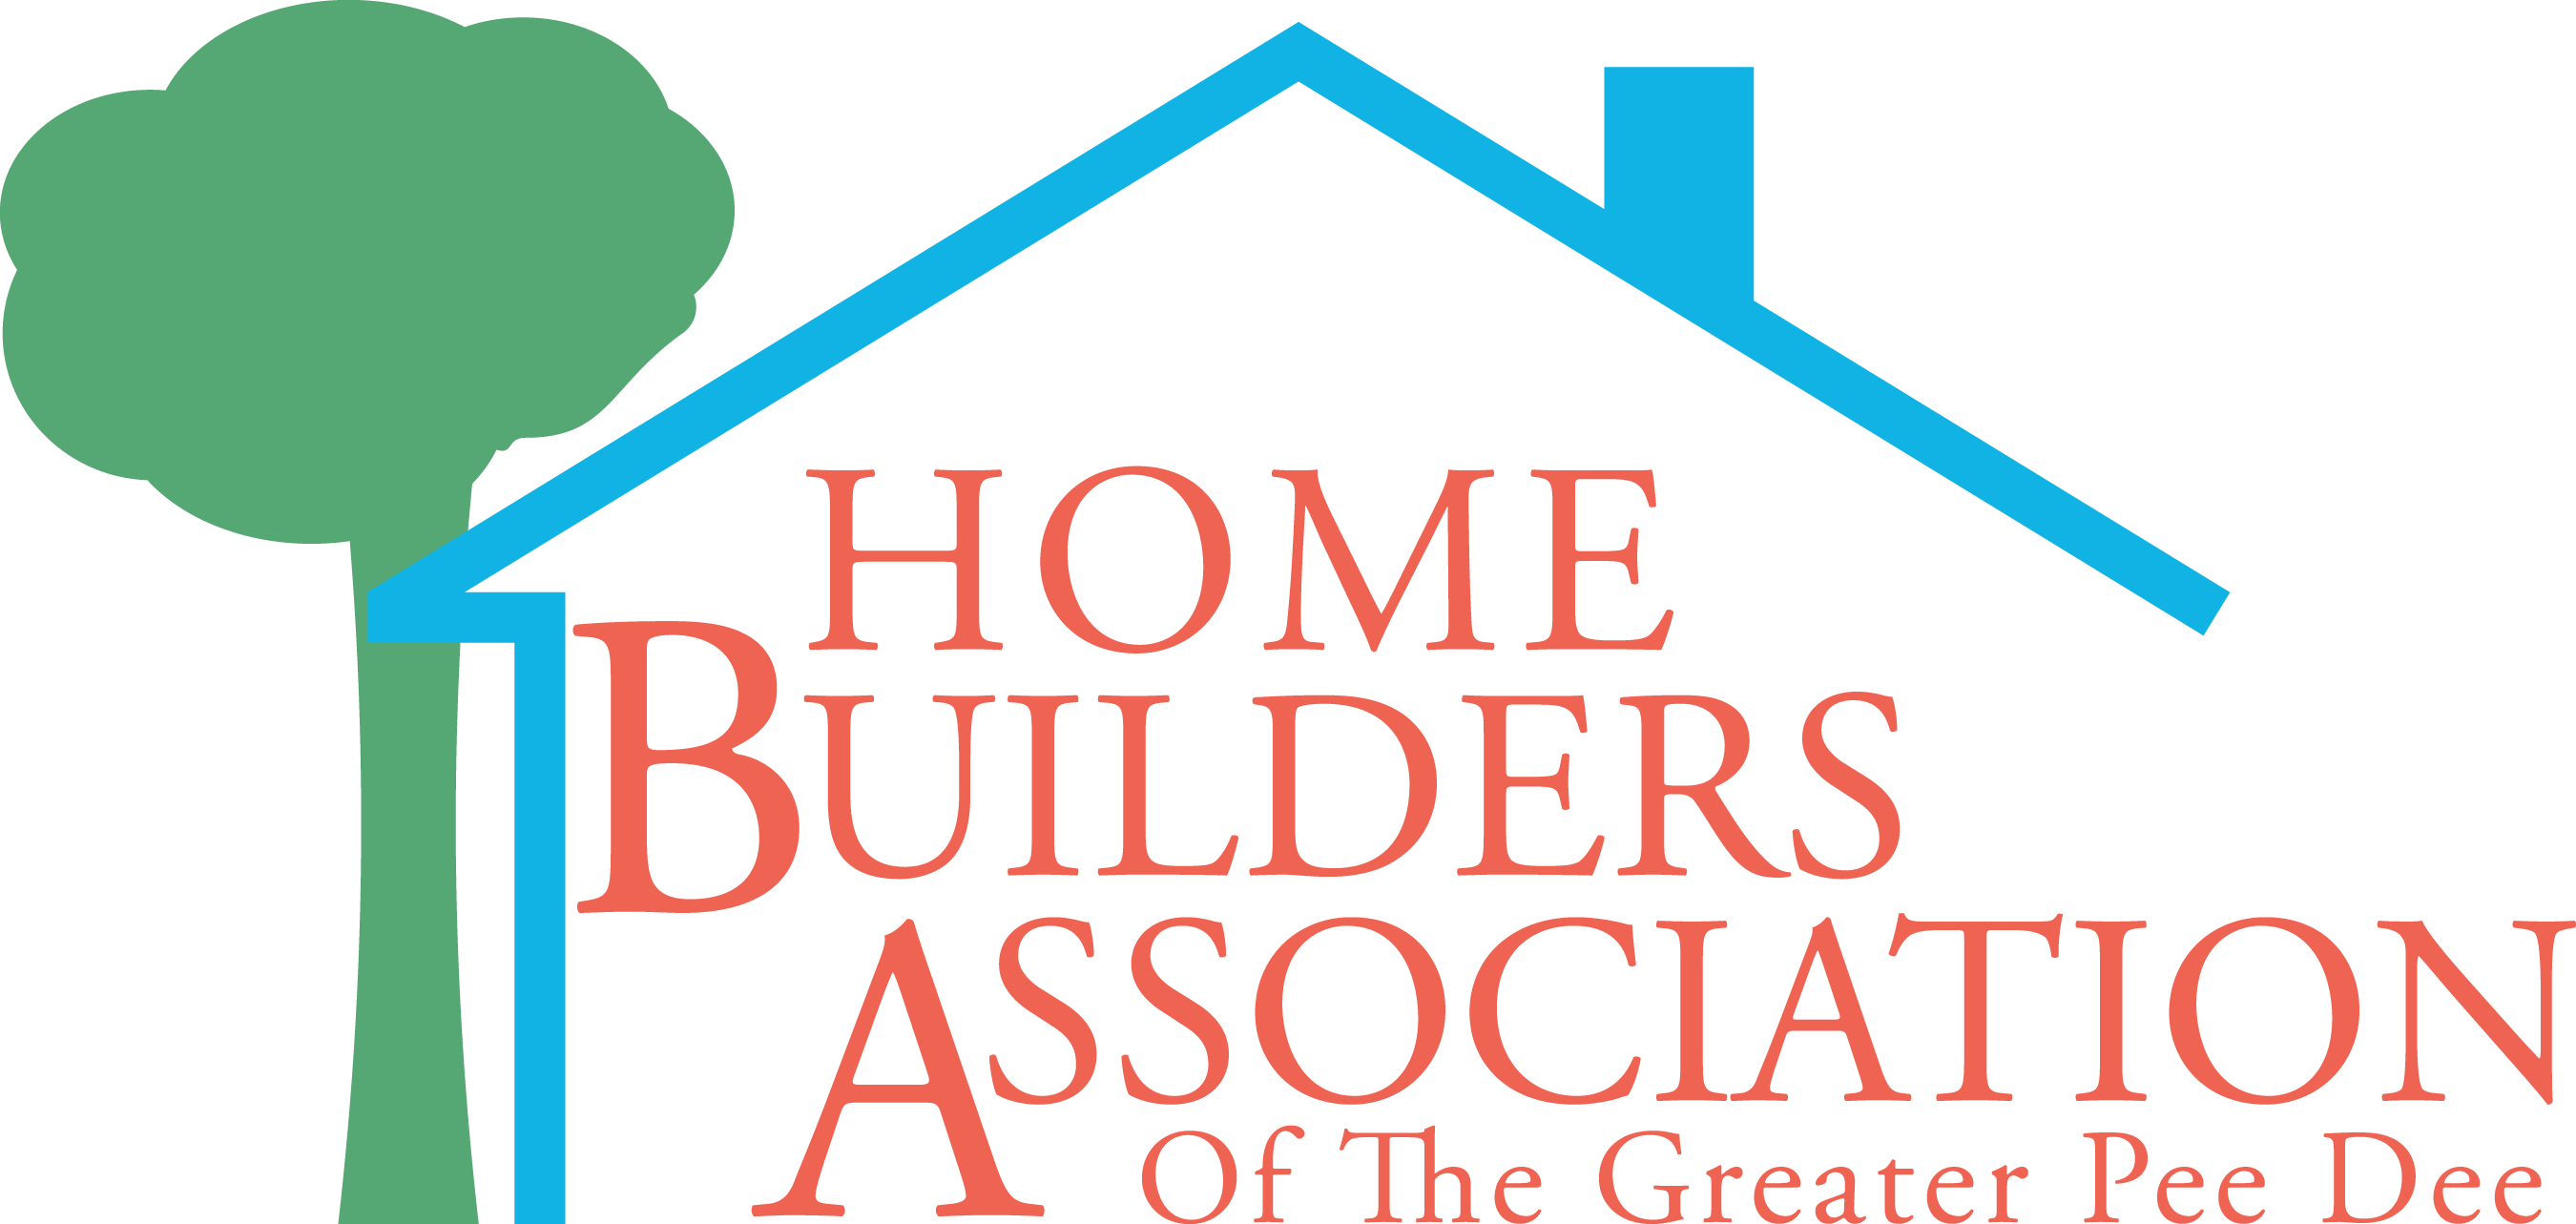 Home Builders Assosciation of the Greater Pee Dee